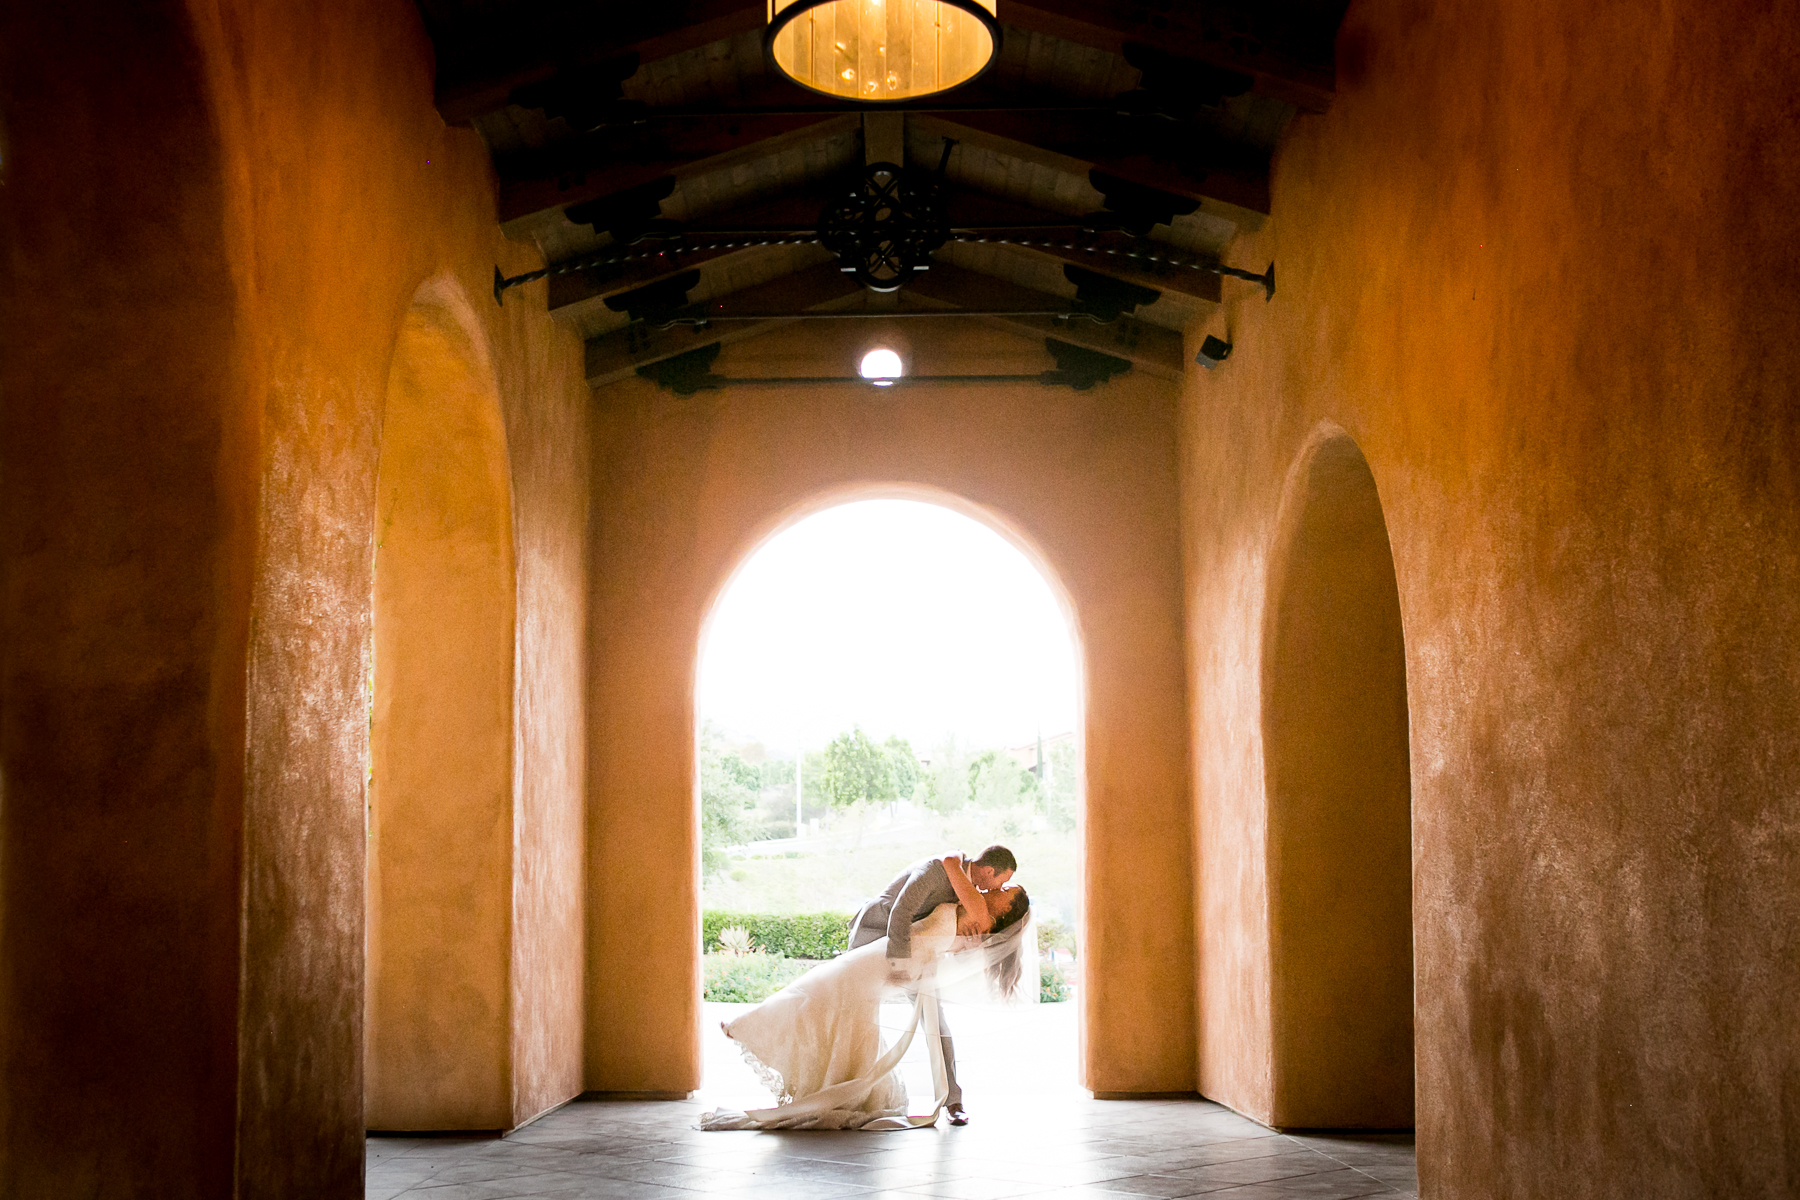 groom dips bride and kiss at wedding venue photographer in corona